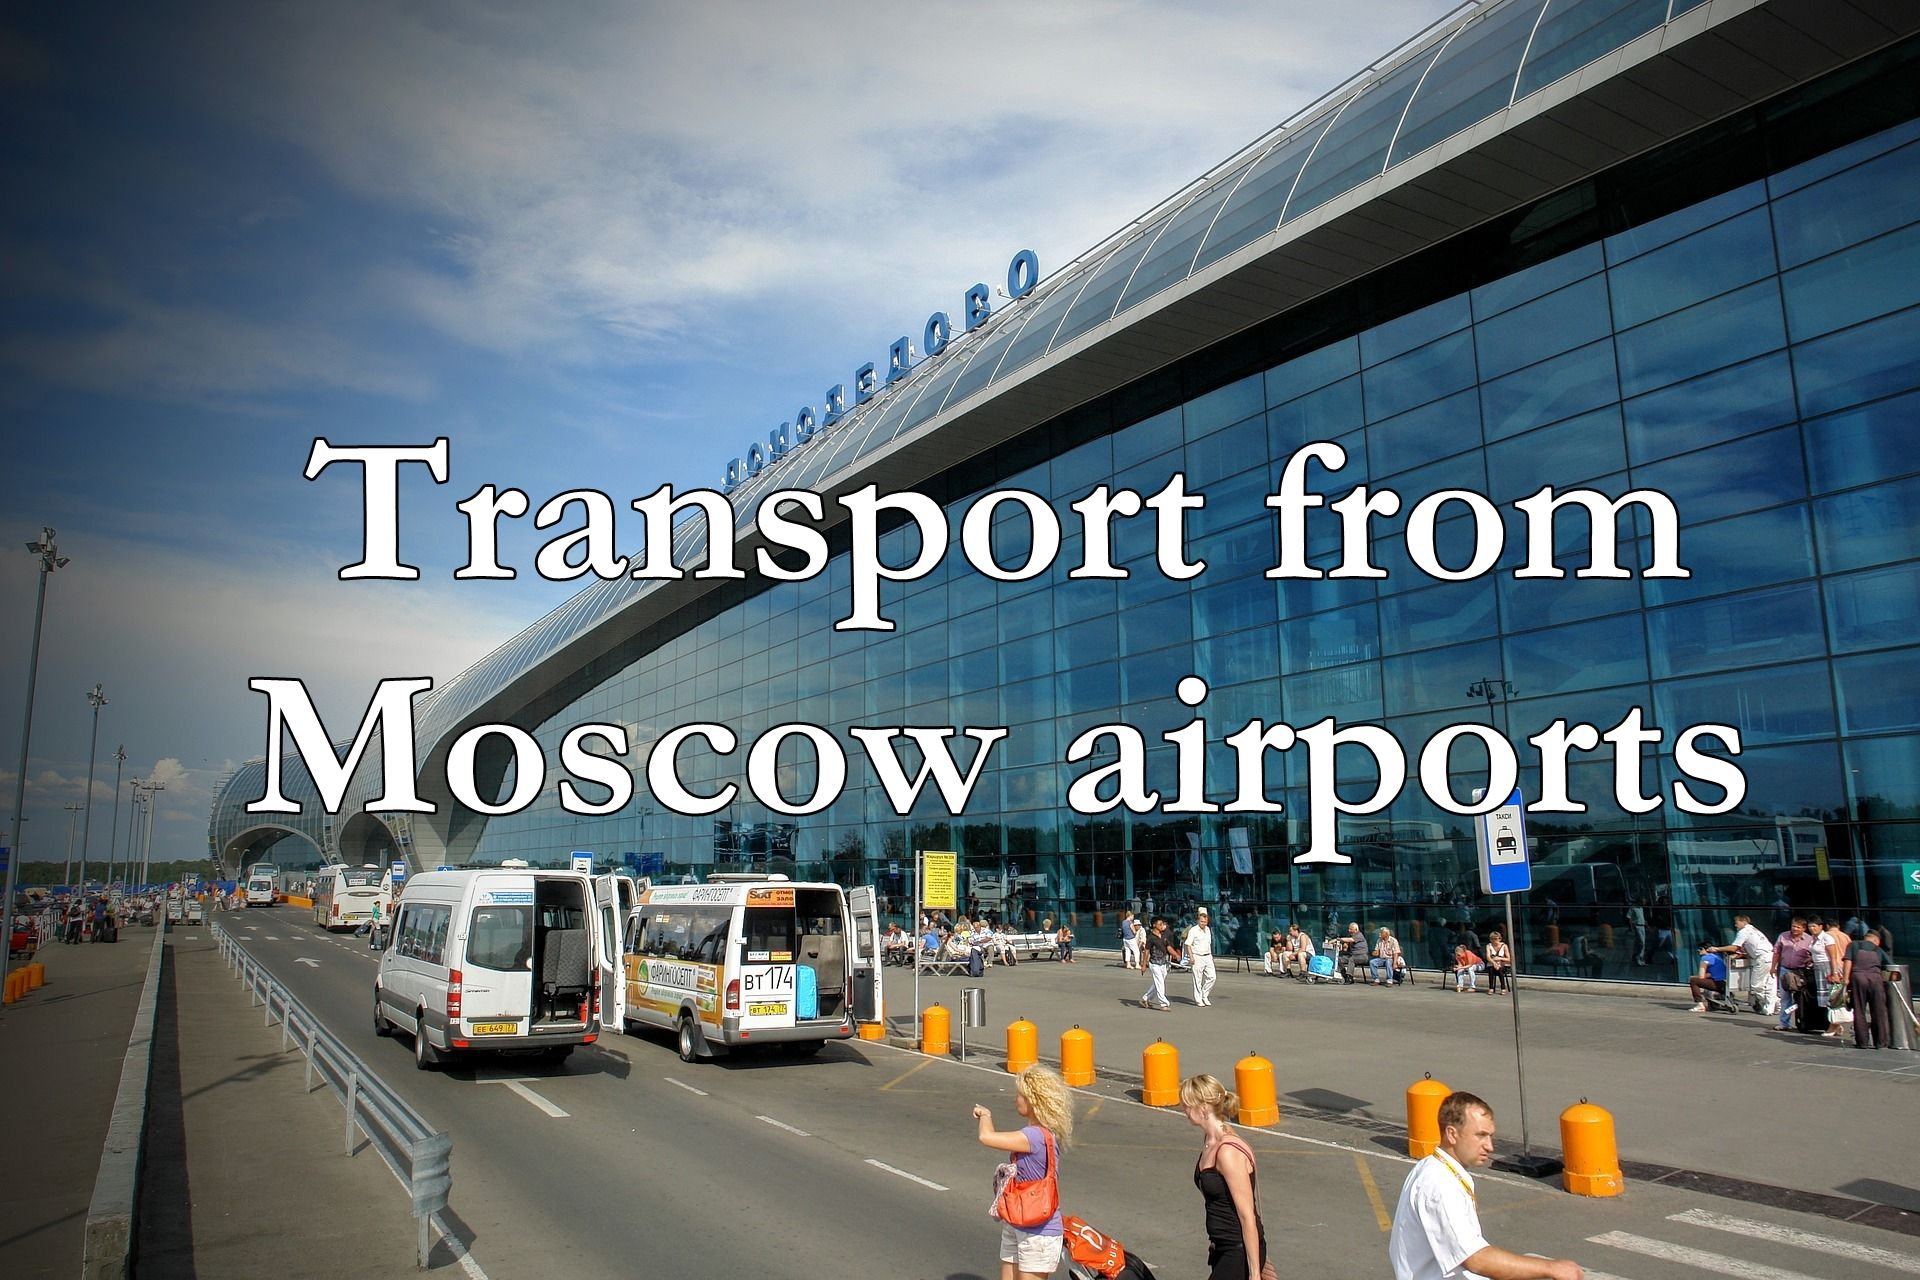 How to get from Sheremetyevo to Domodedovo